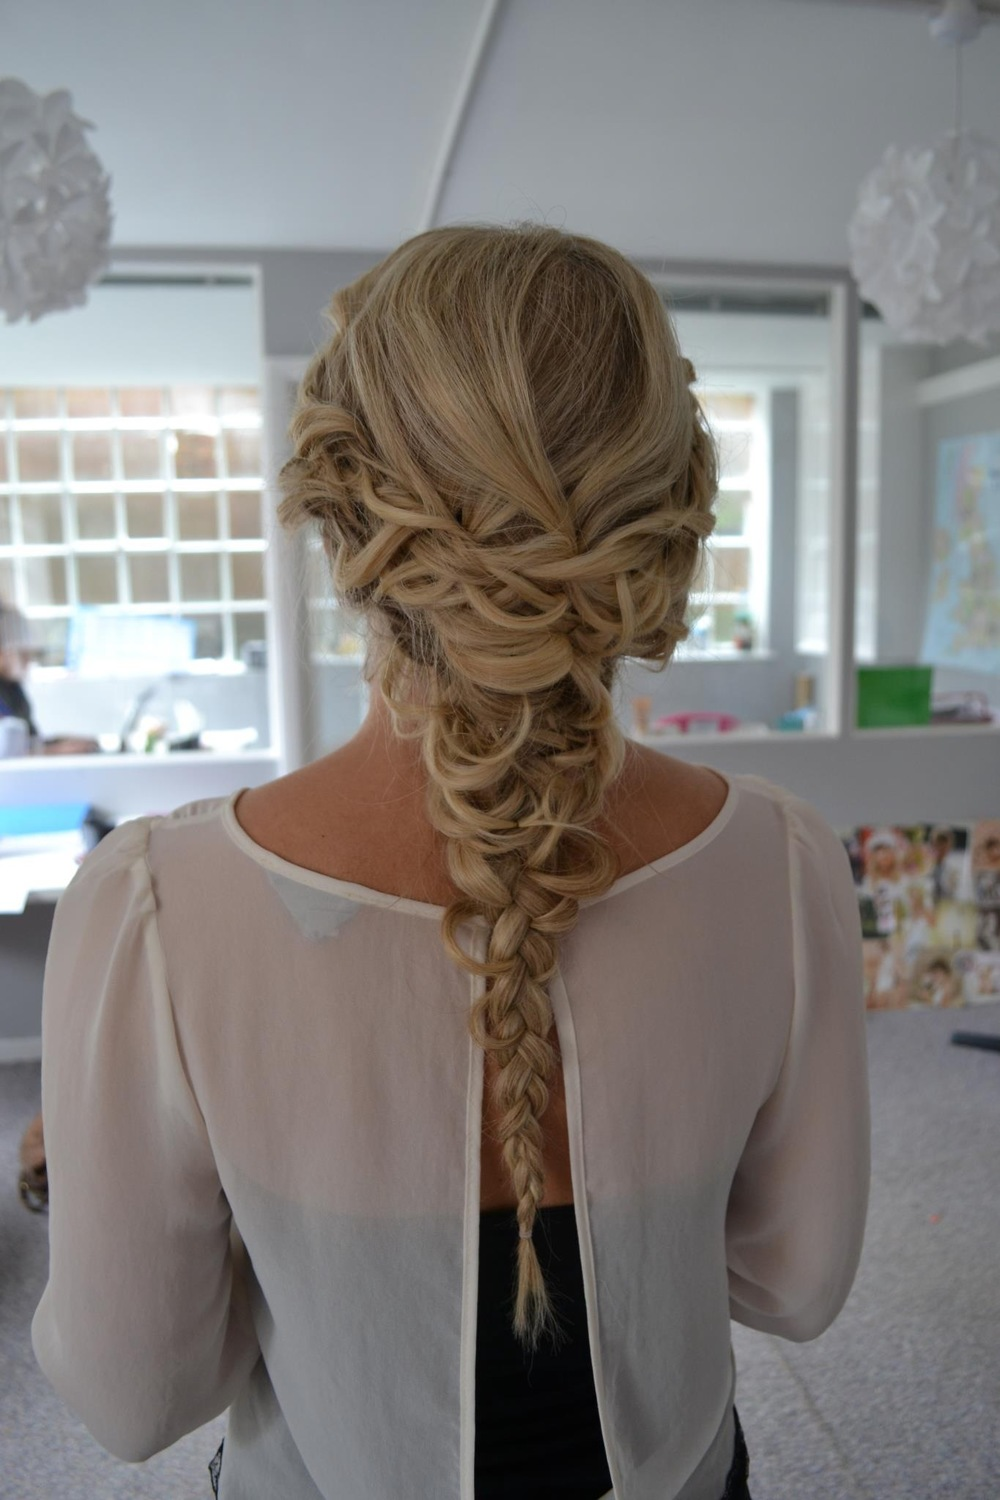 Festival chic fishtail braid